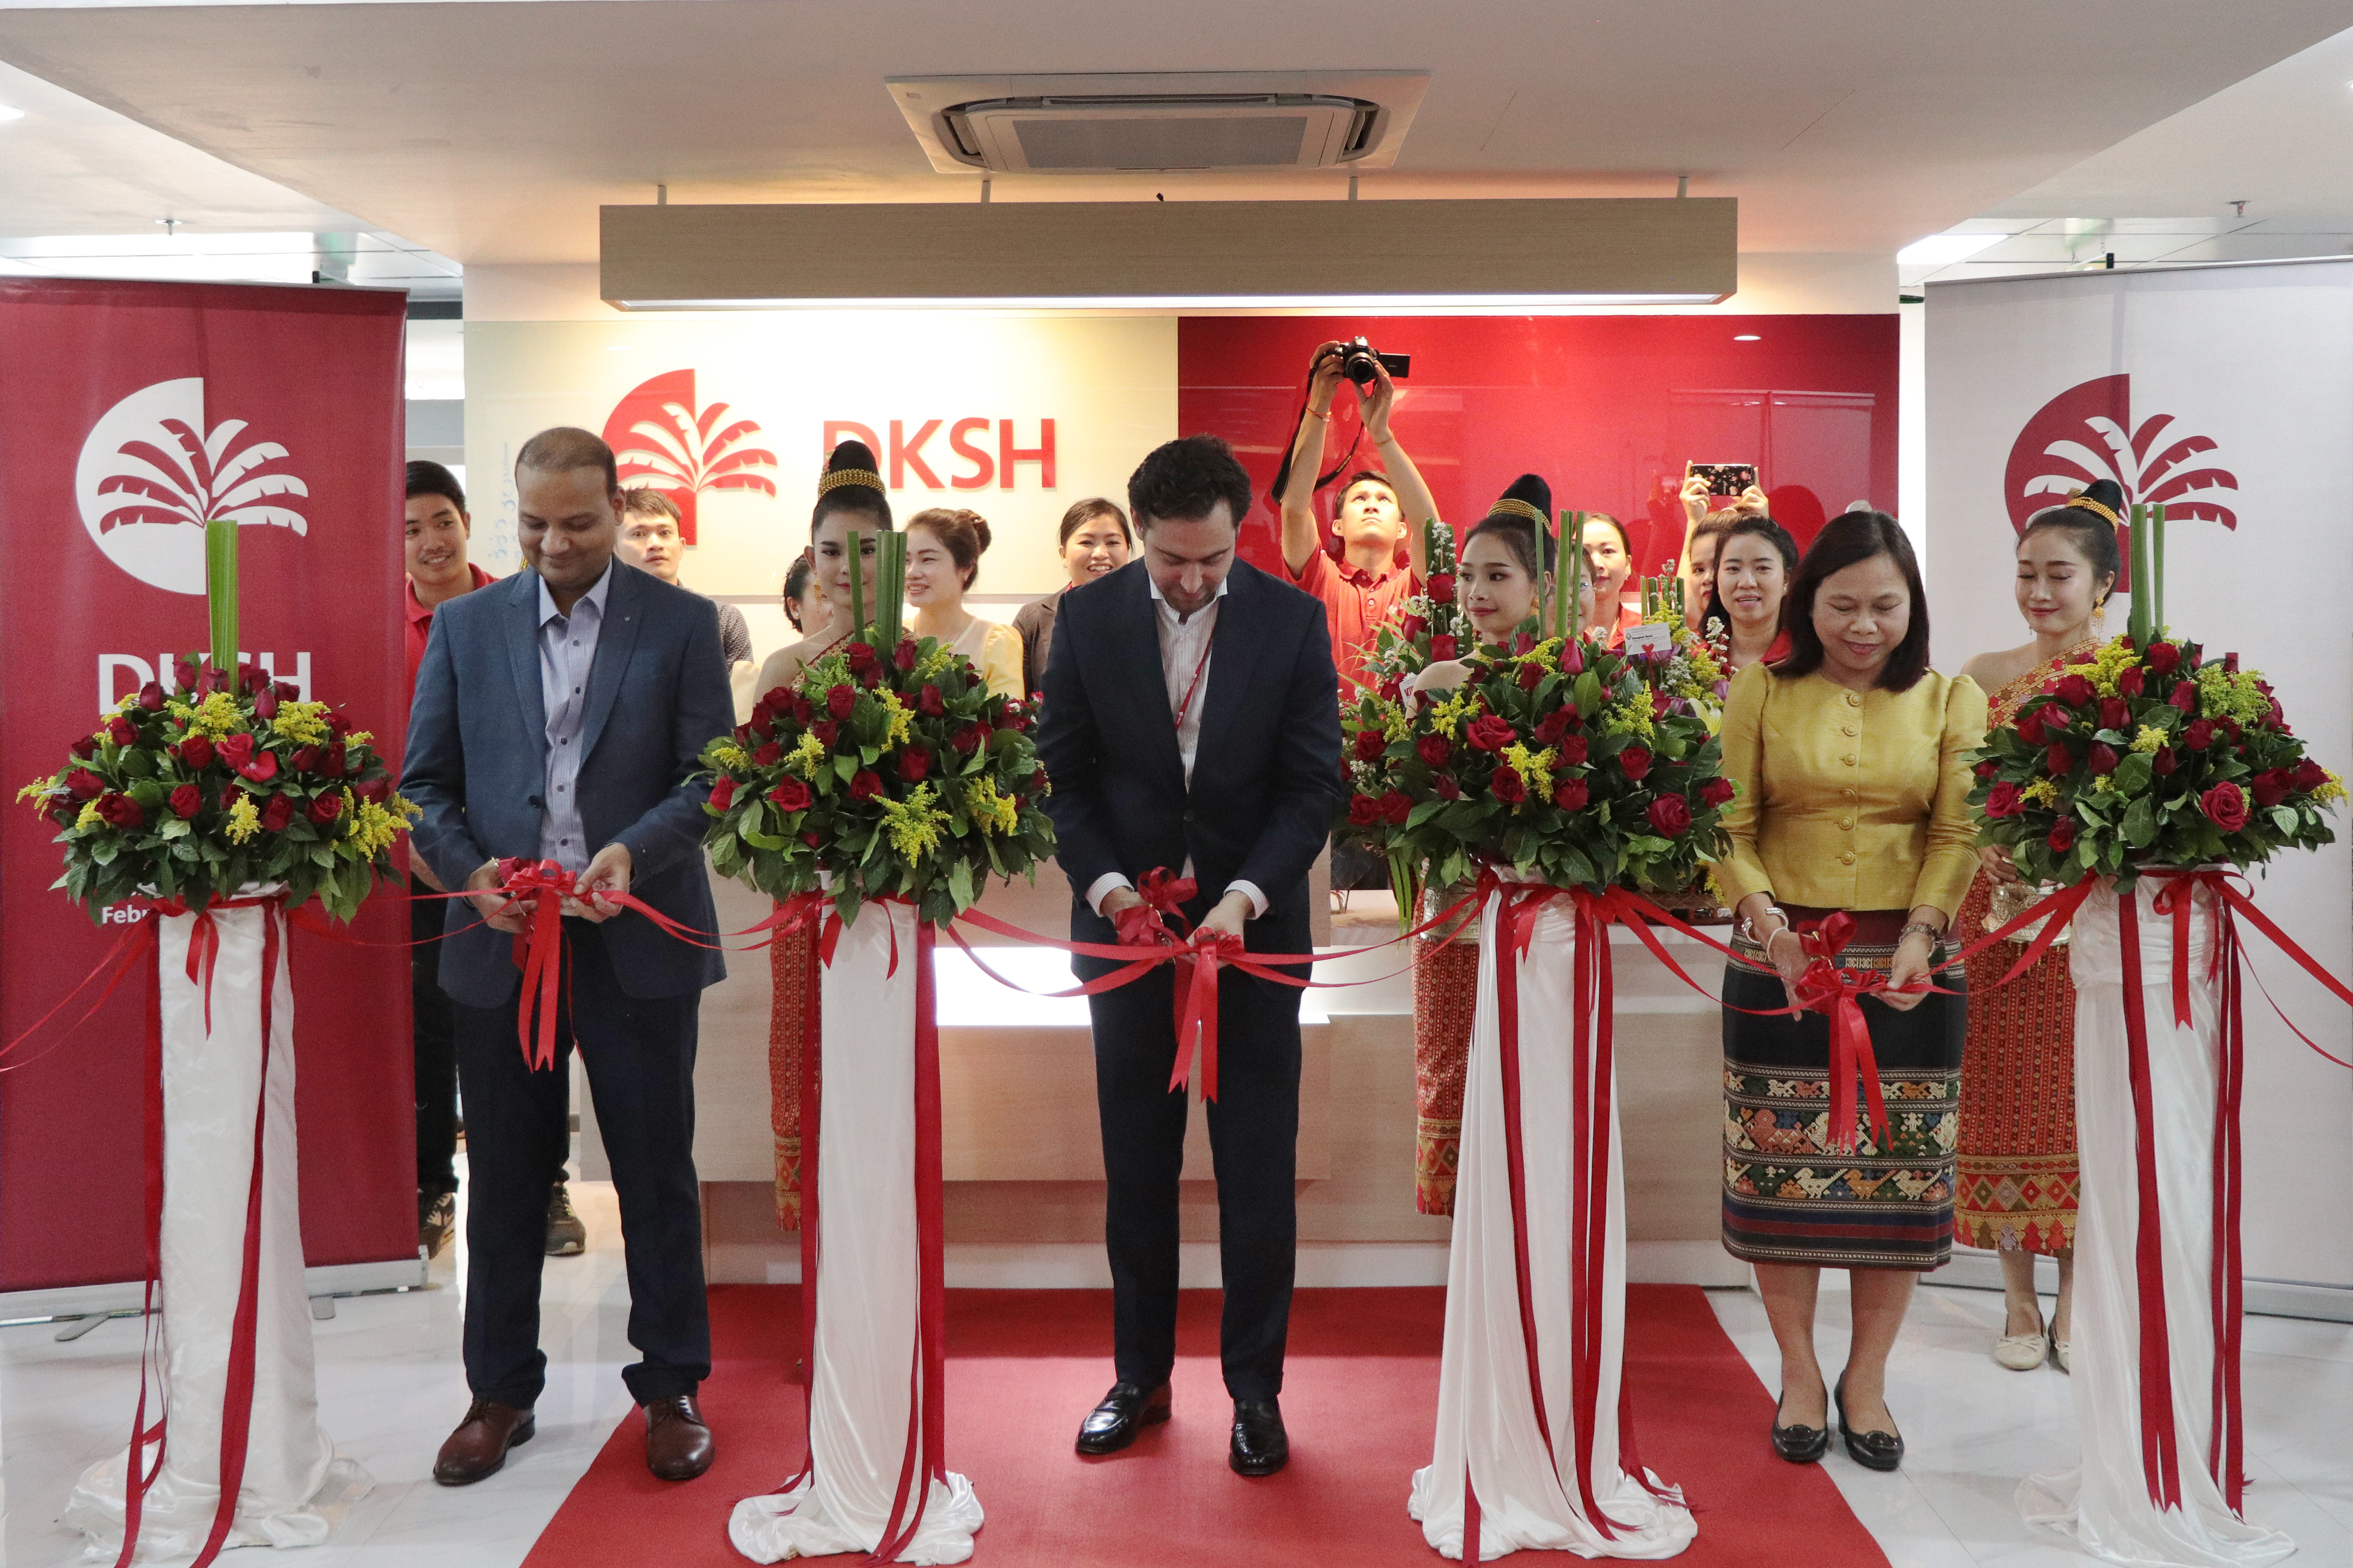 DKSH relocates its branch office in Laos